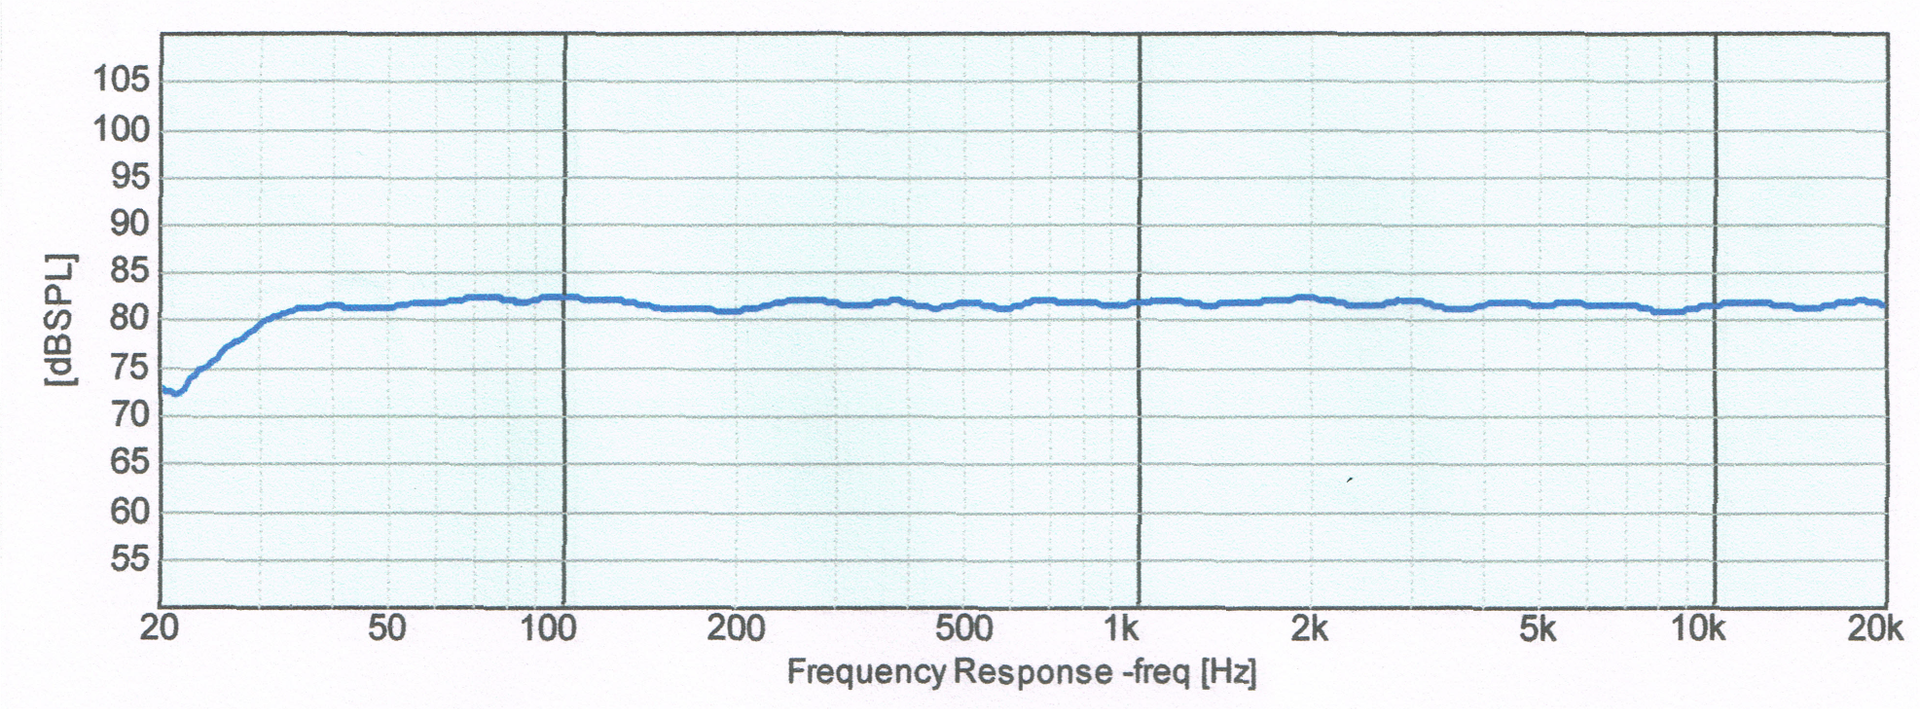 Frequency Response_FIVE17_18SEP2020.png